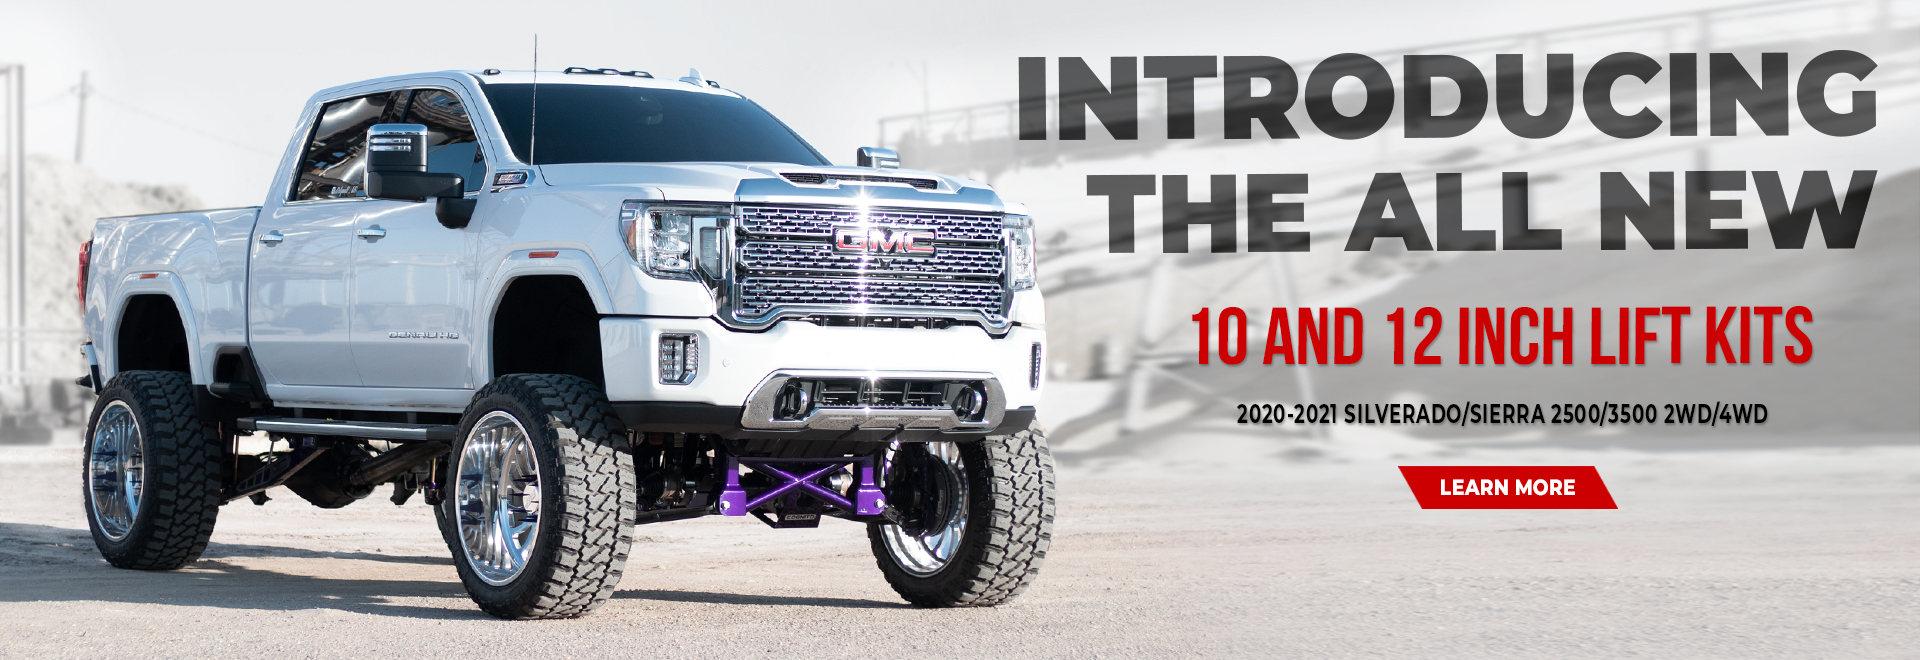 10 and 12 Inch Performance Lift Kits GMC and Chevy